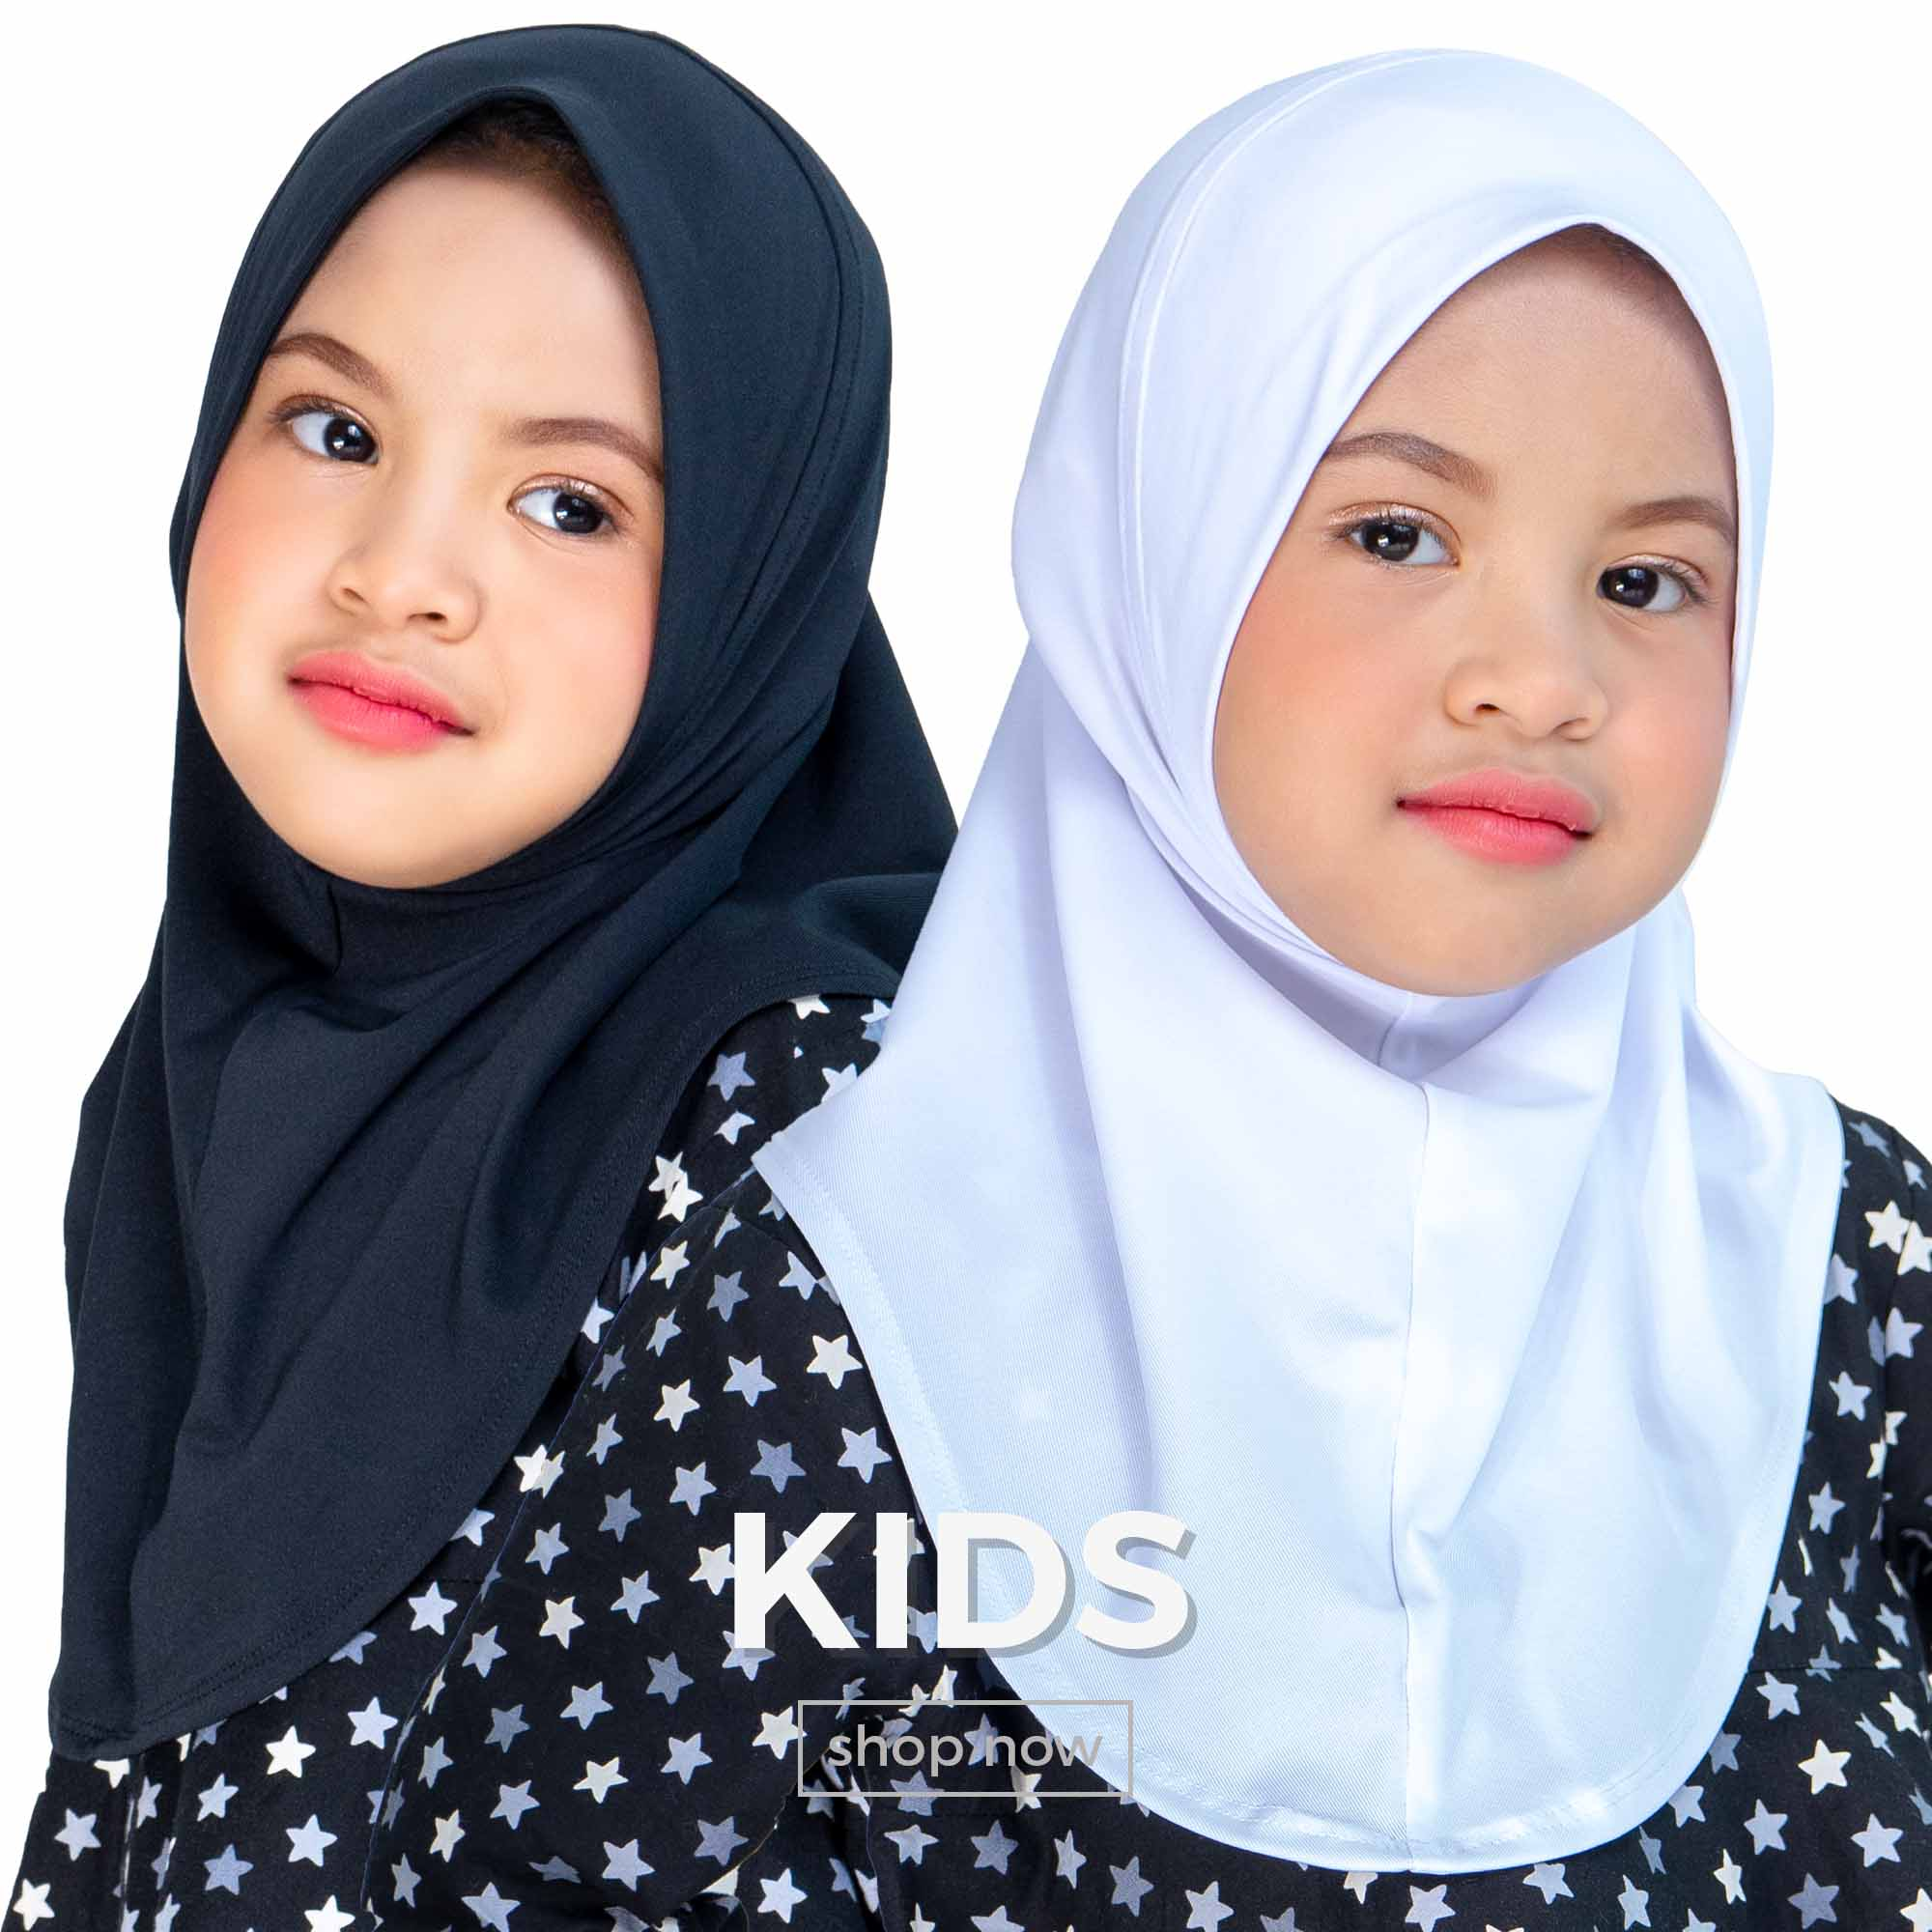 Kids collection by AIRAZ InnerSejuk